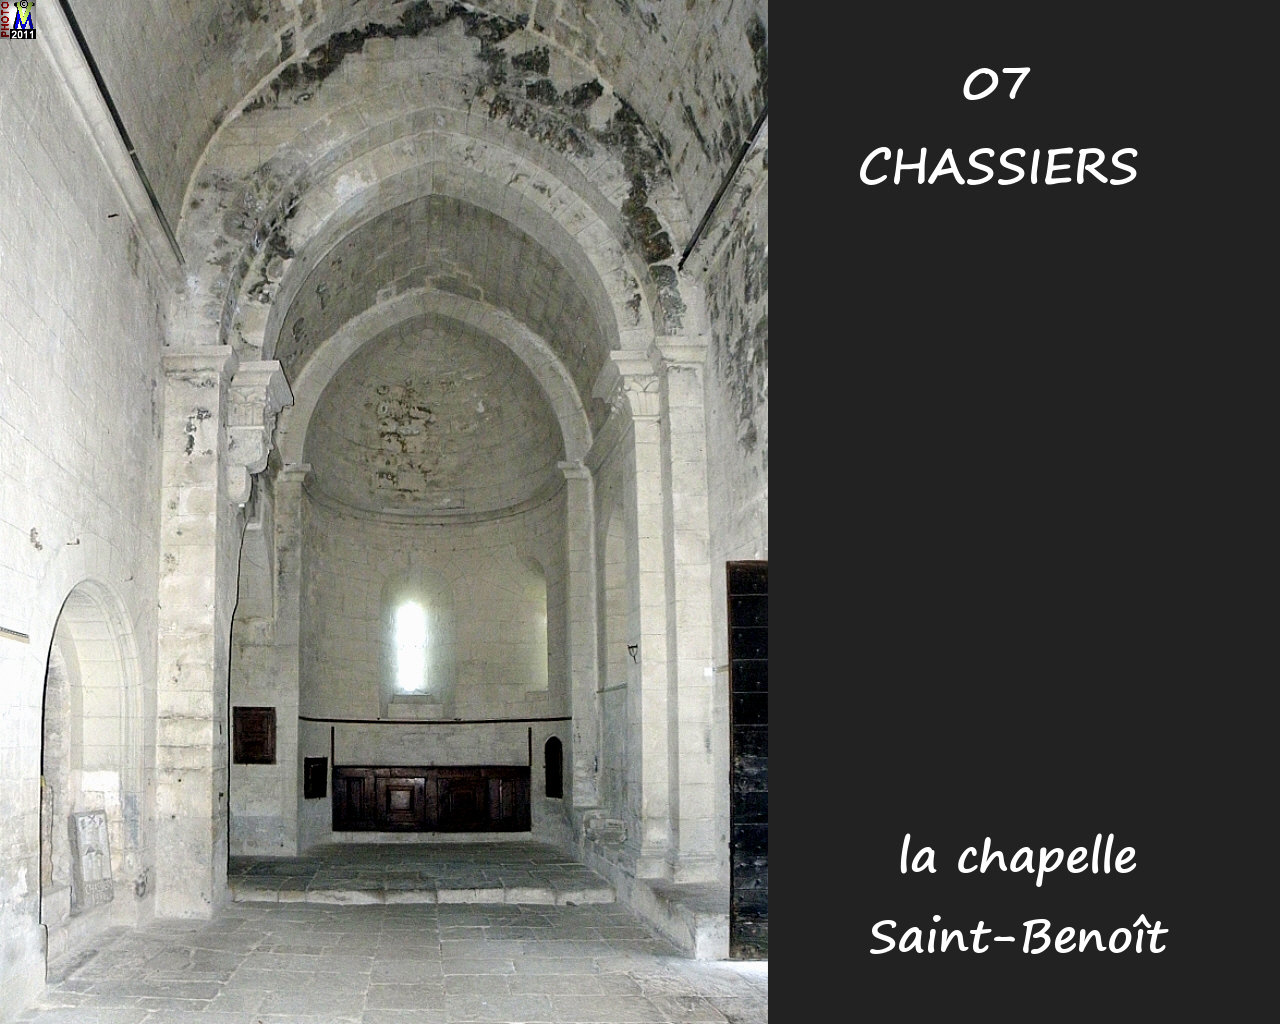 07CHASSIERS_chapelle_200.jpg